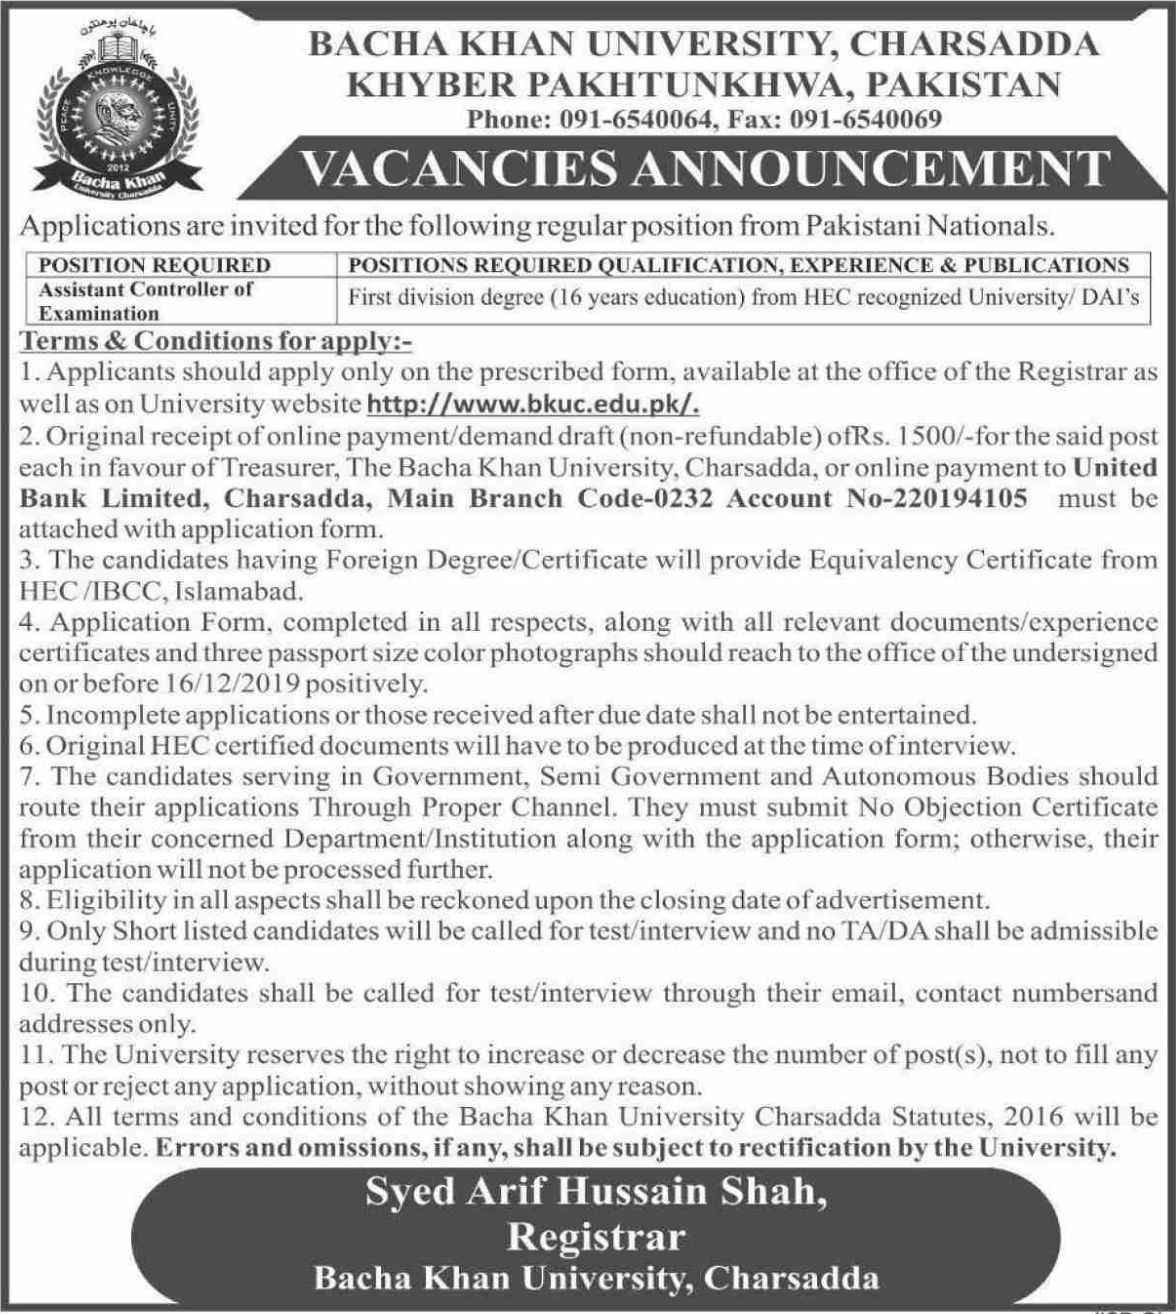 Bacha Khan University Charsadda KPK Jobs December 2019